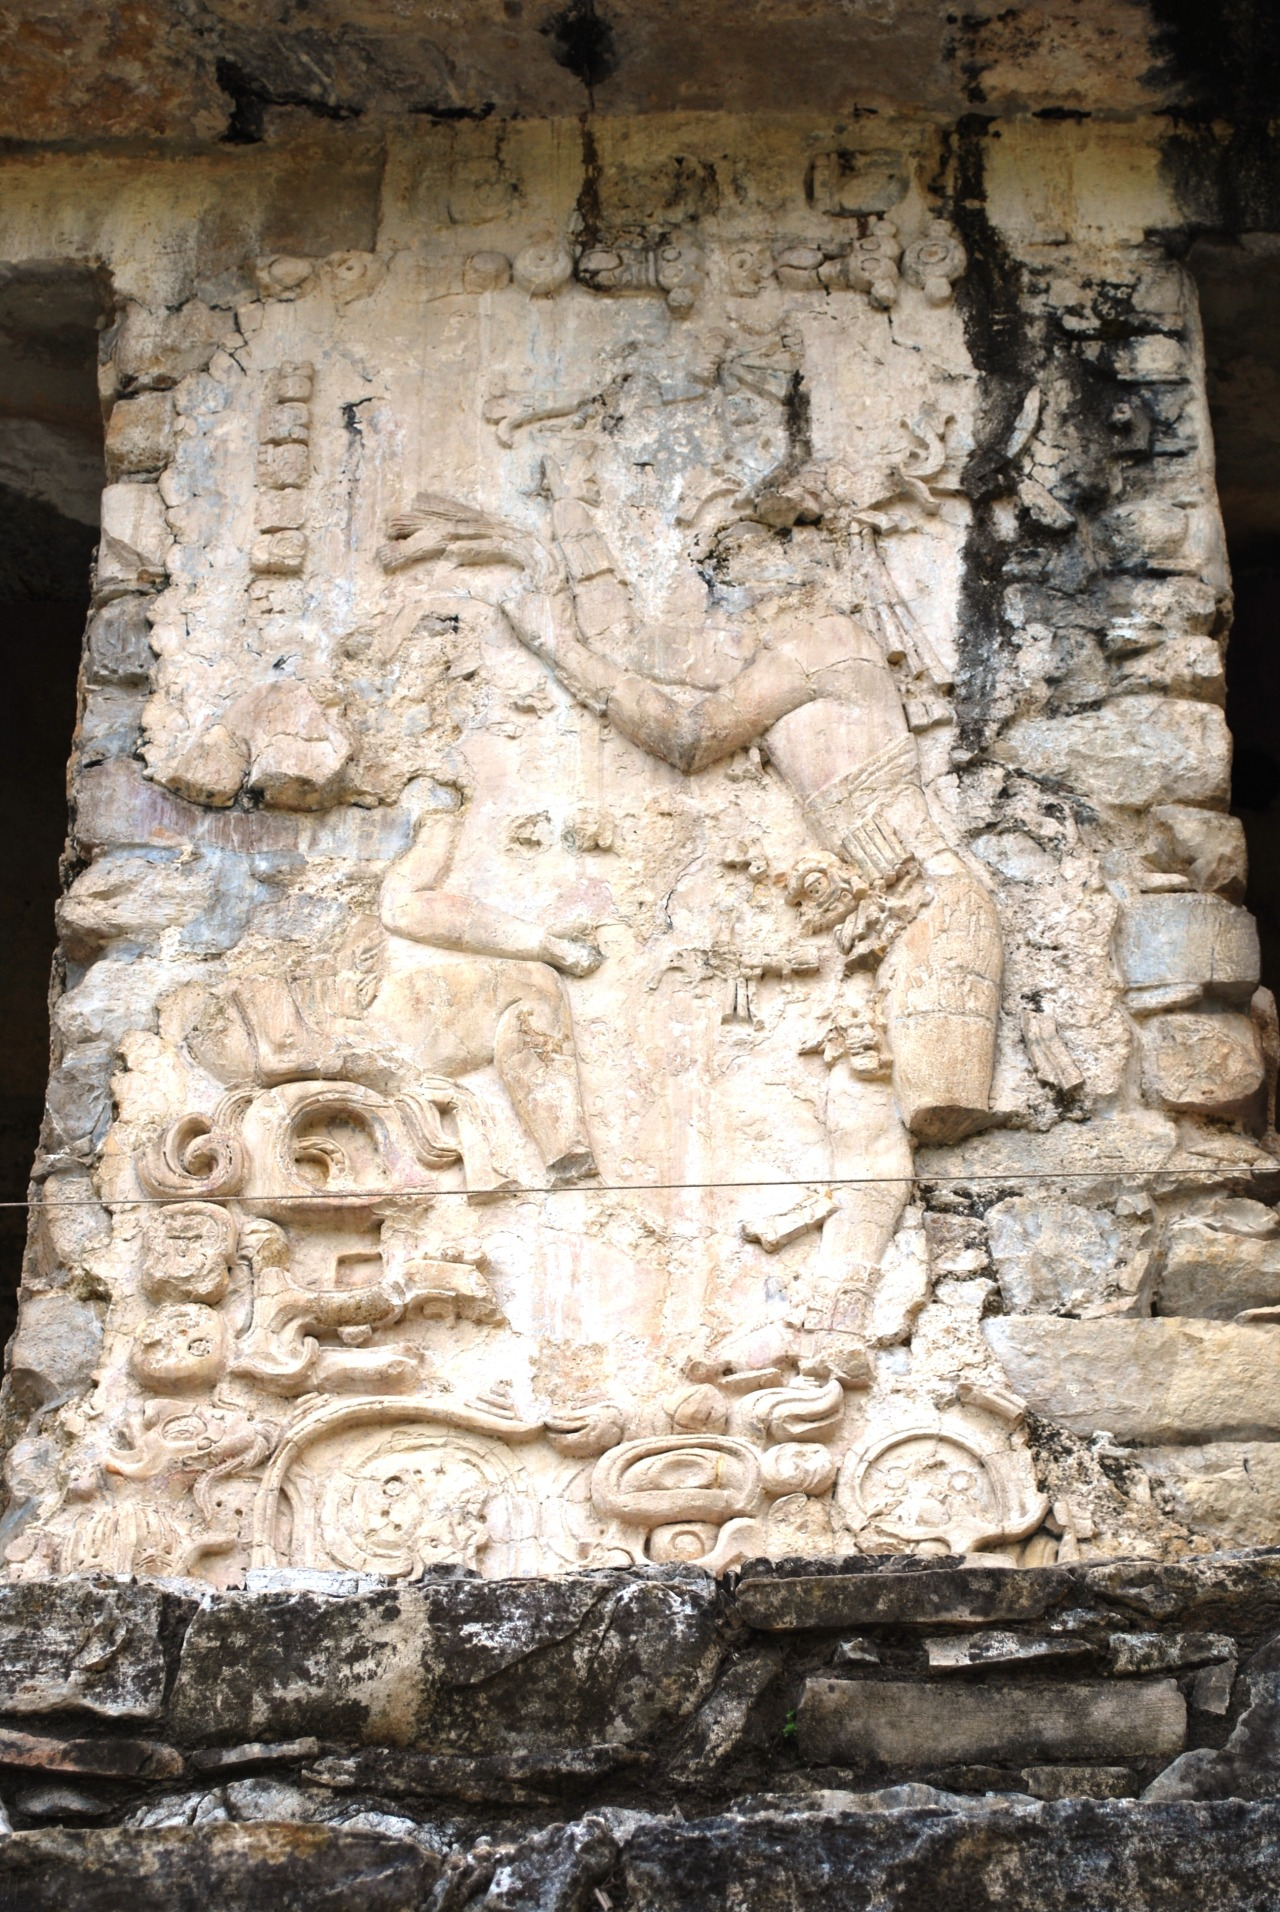 Close up of one of the panels at the Mayan Temple of Inscriptions at Palenque, Chiapas, Mexico. Photo courtesy & taken by AlejandroLinaresGarcia